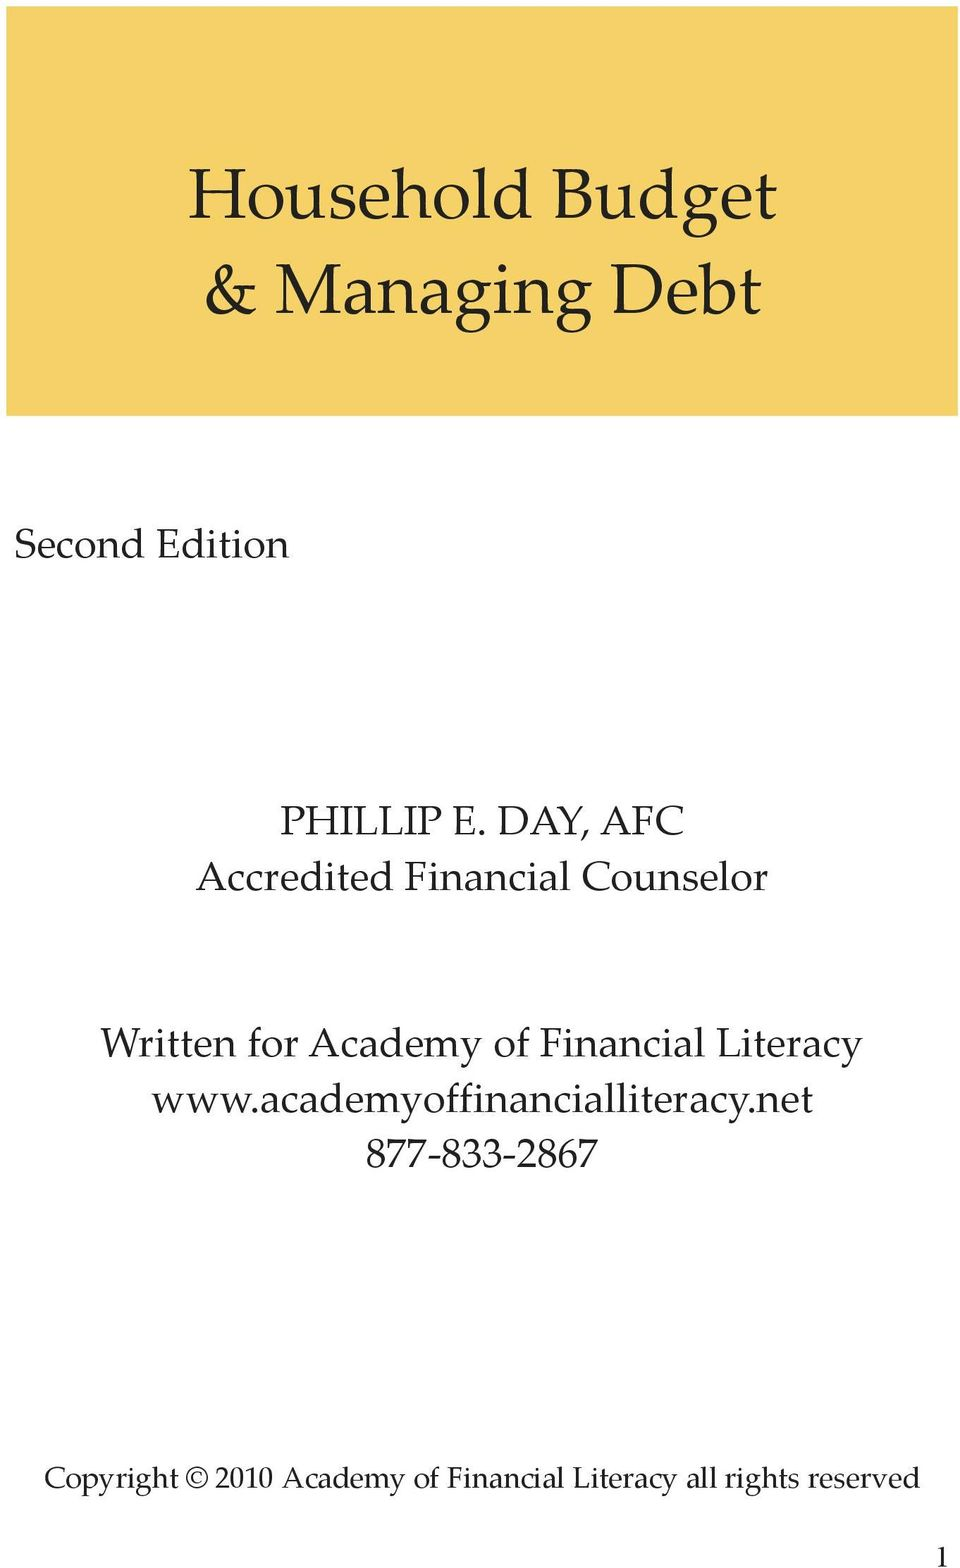 Financial Literacy www.academyoffinancialliteracy.